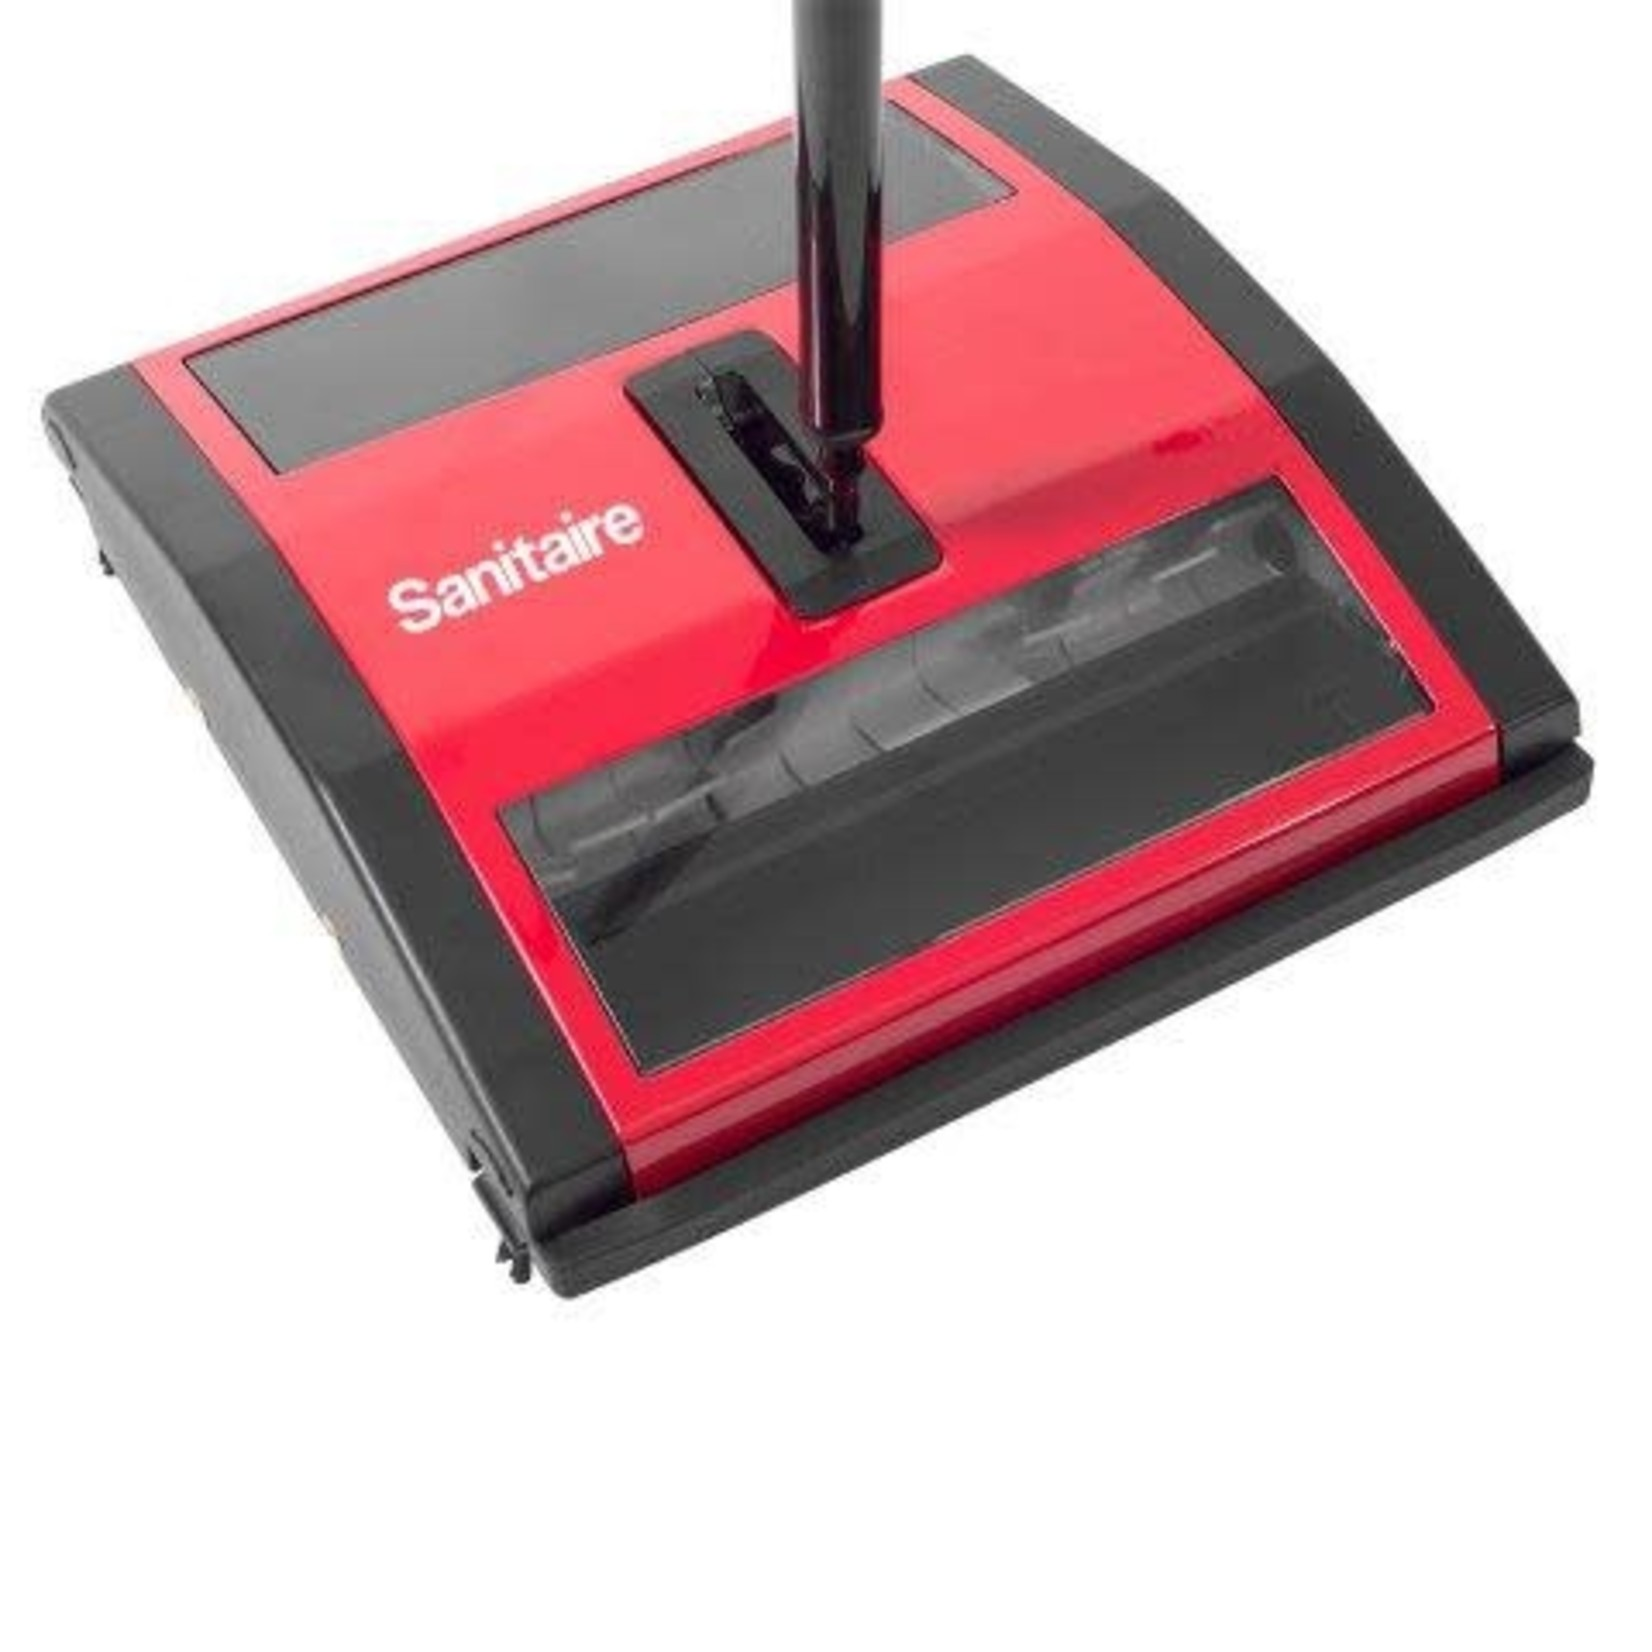 Sanitaire Sanitaire Deluxe Carpet Manual Sweeper